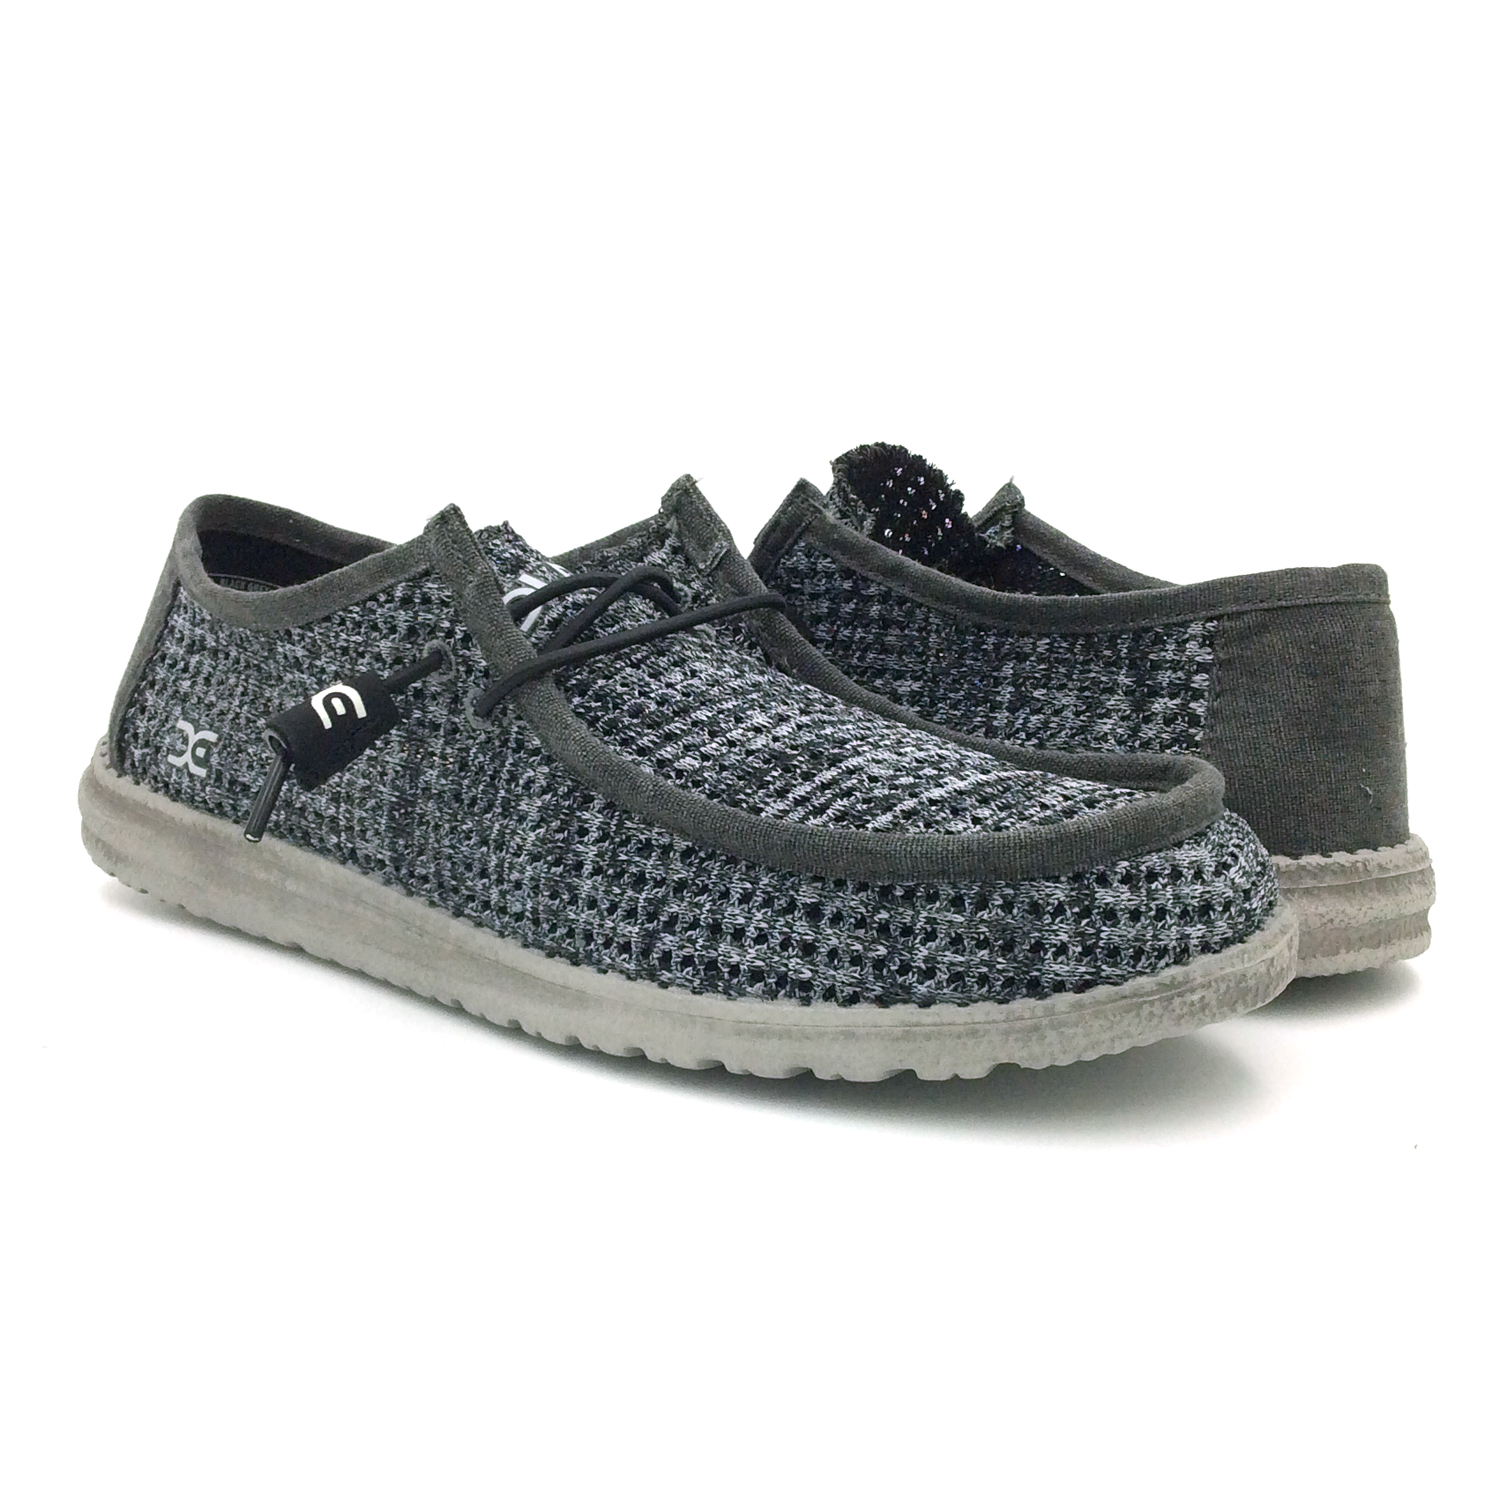 Details about Hey Dude Men s Wally Sox Perforated Black Grey 00329b557d7c